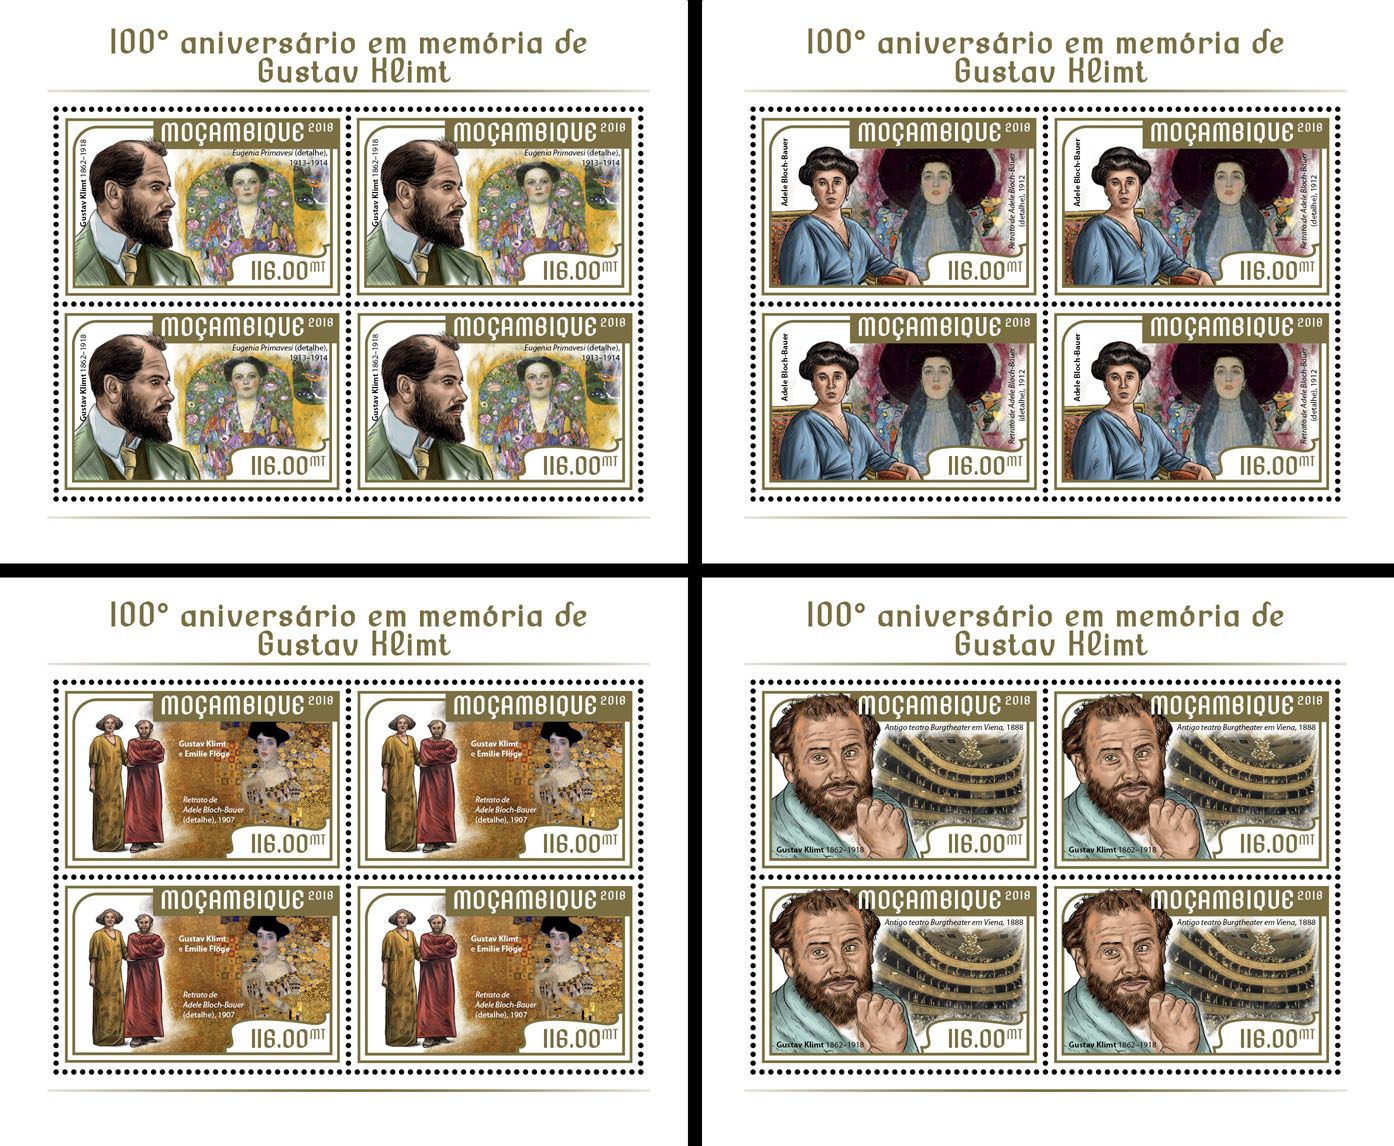 Gustav Klimt (4 sets of 4 stamps) - Issue of Mozambique postage Stamps